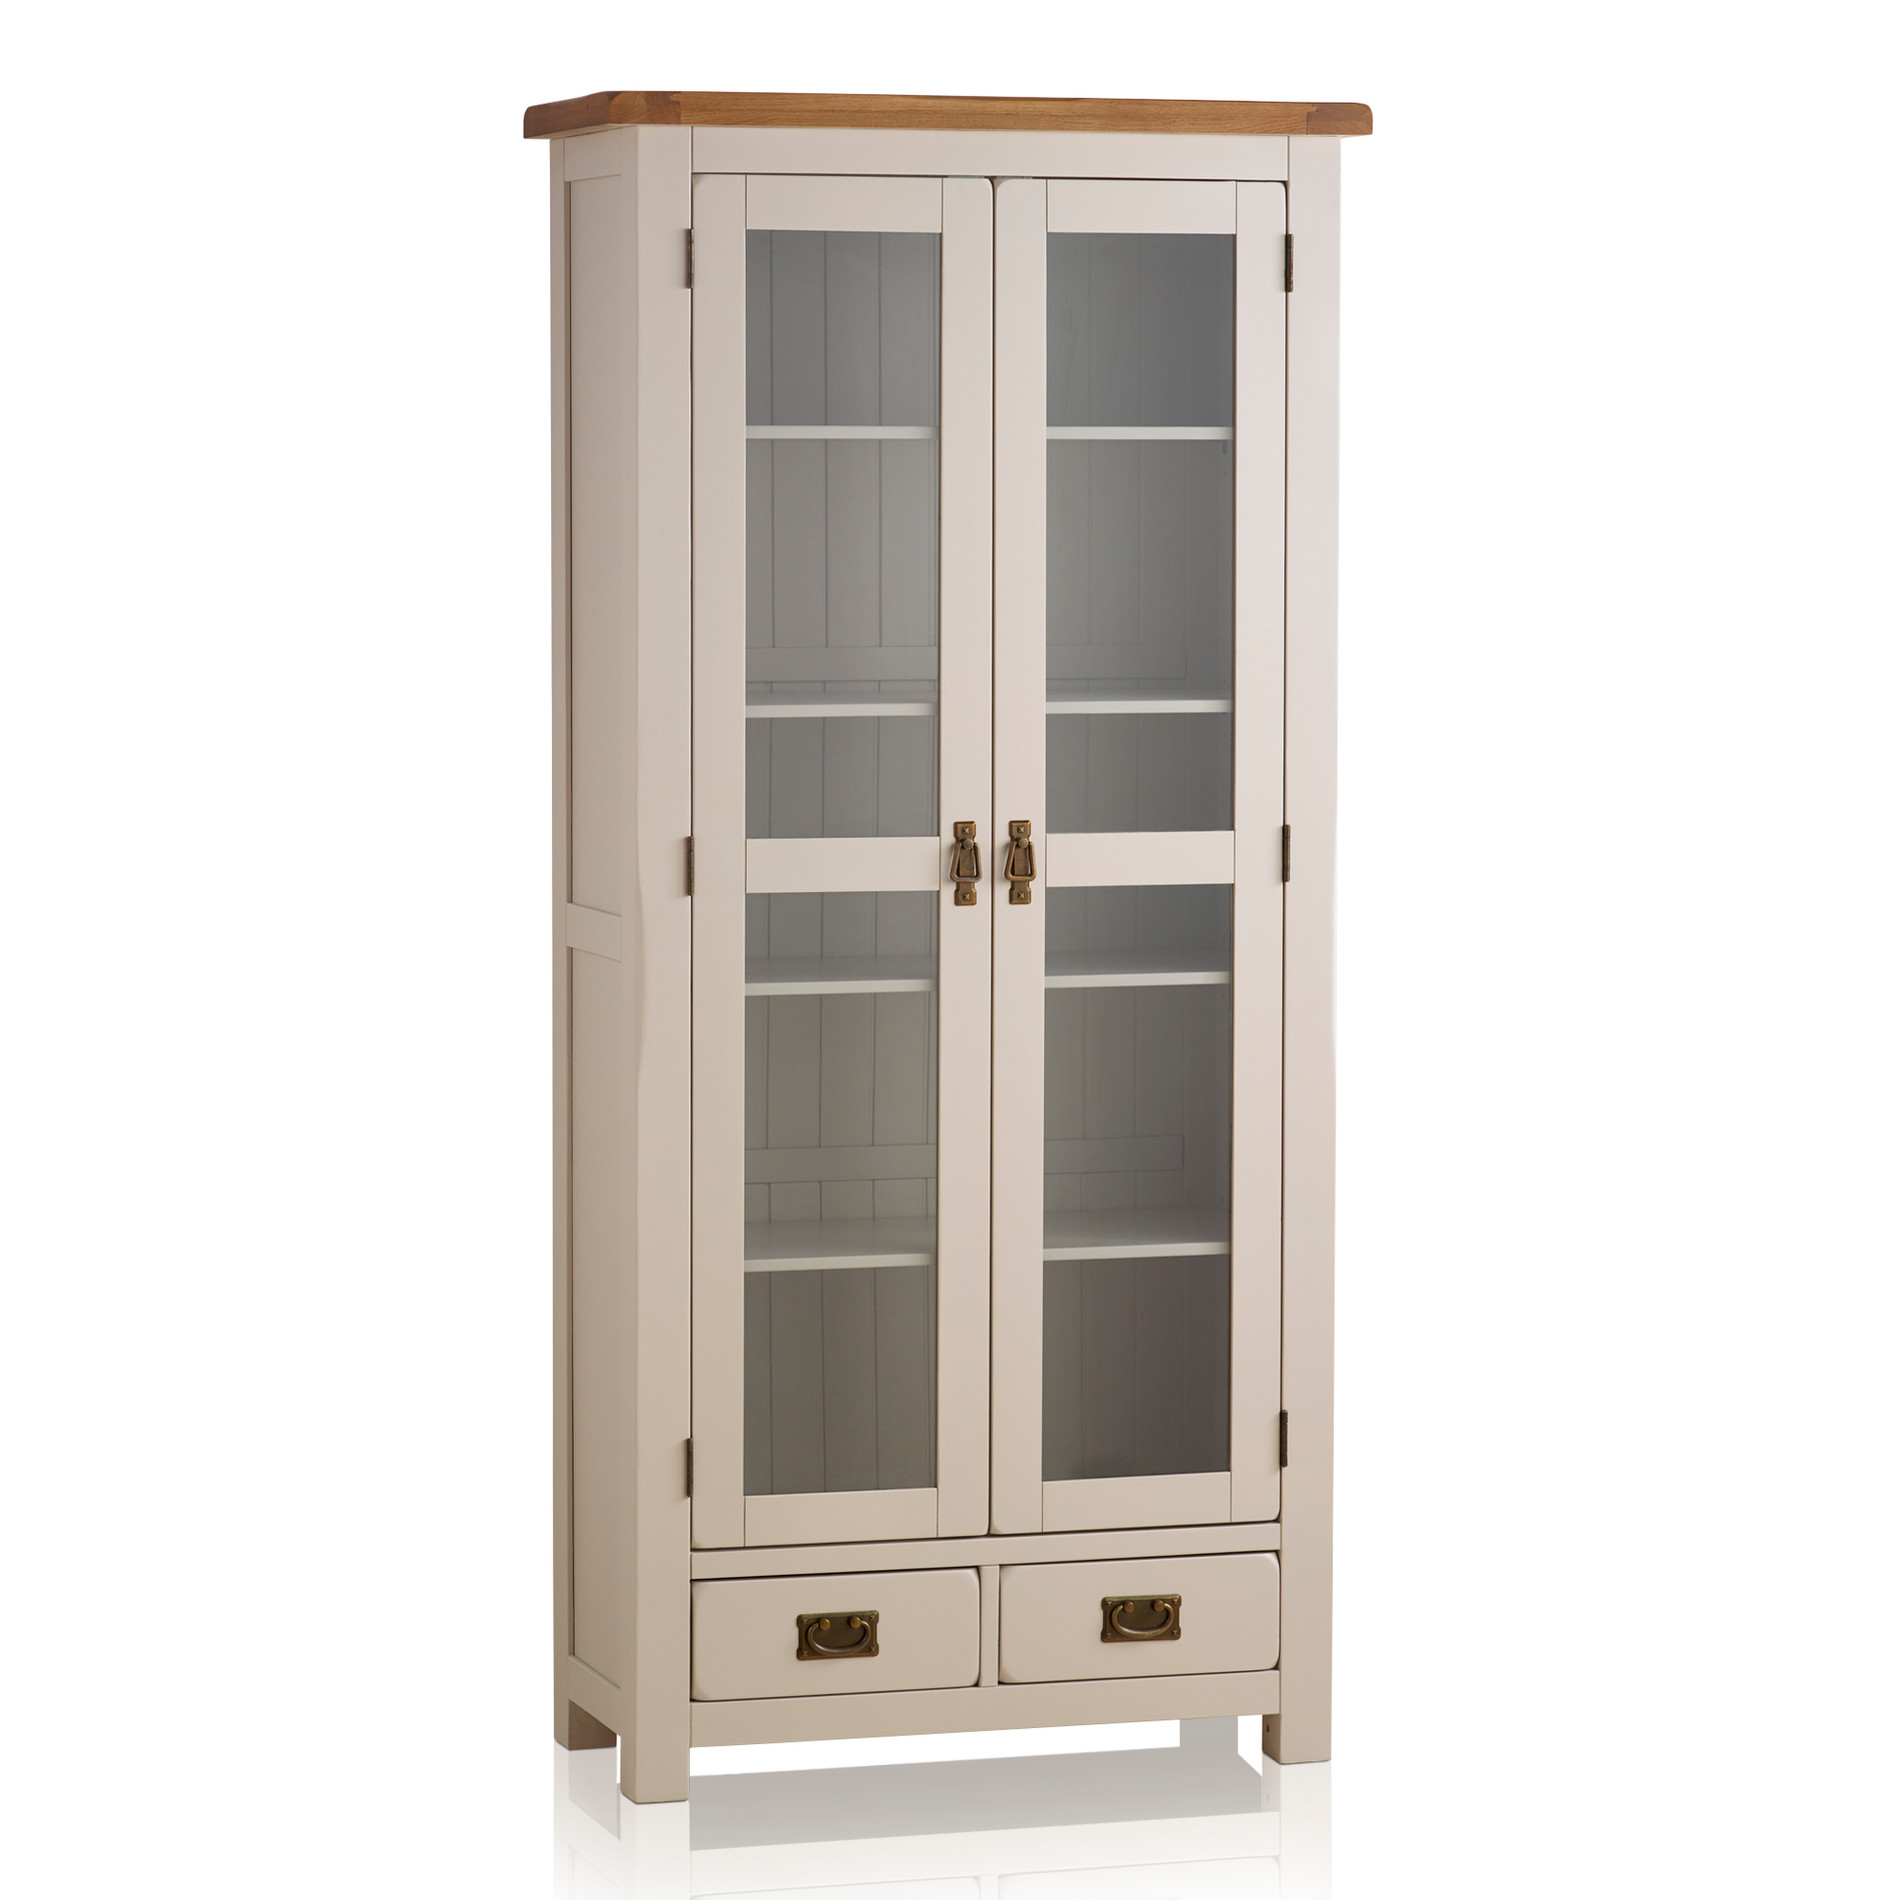 Kemble painted glazed display cabinet in rustic solid oak